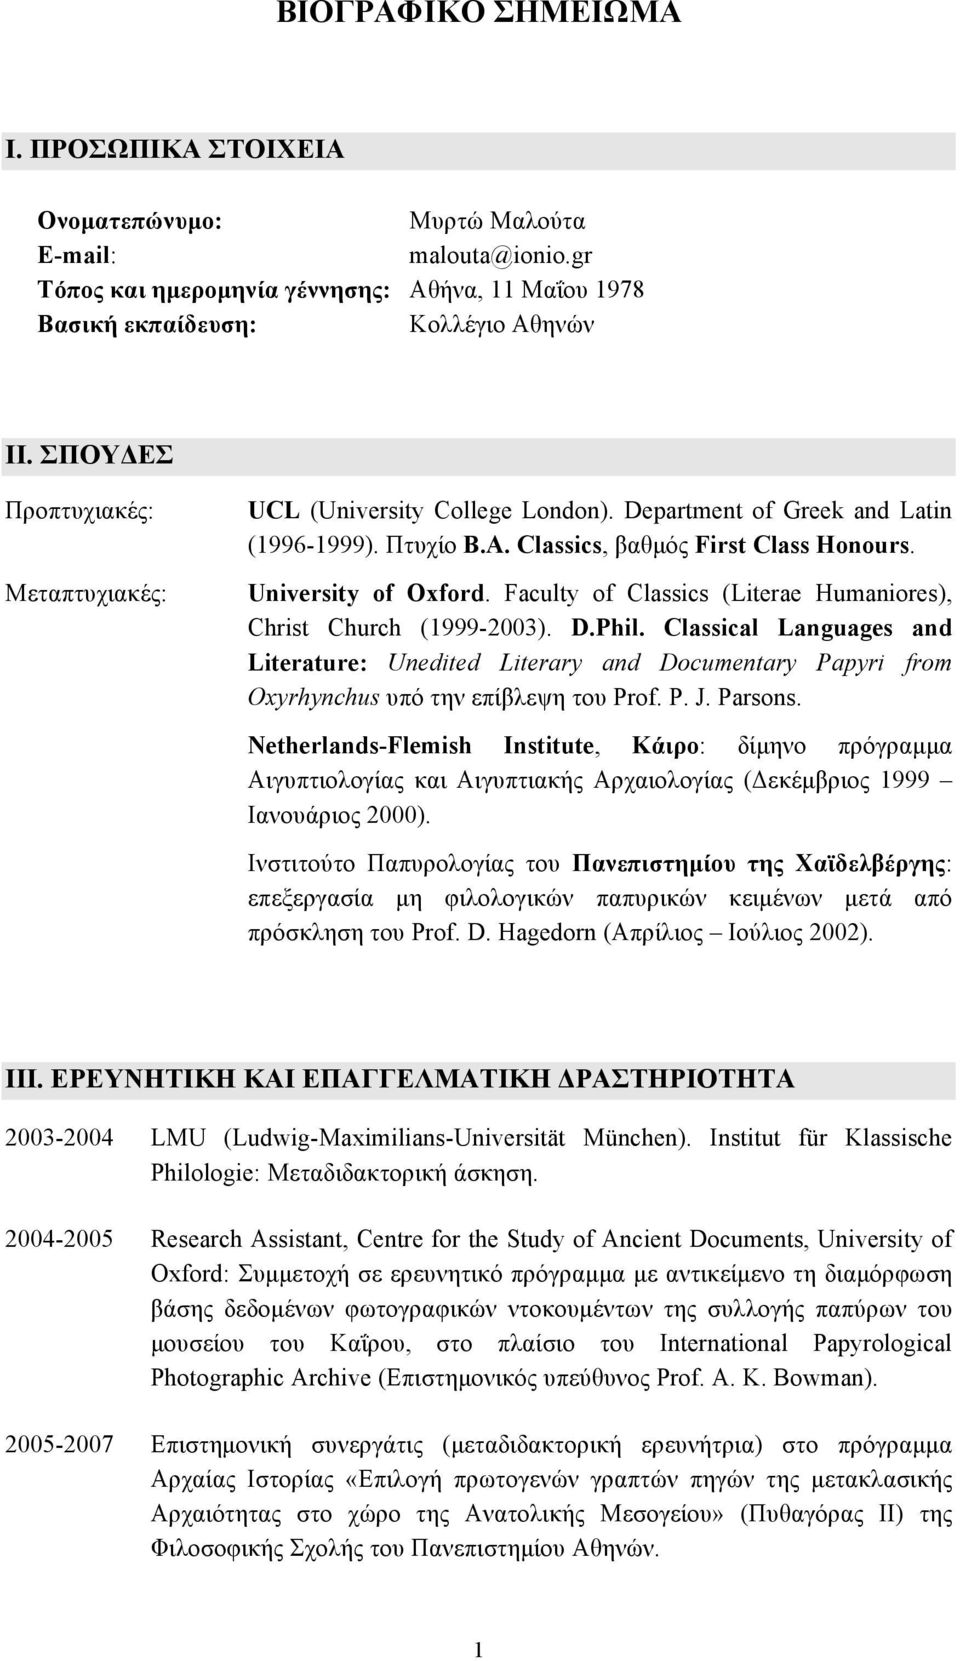 Faculty of Classics (Literae Humaniores), Christ Church (1999-2003). D.Phil. Classical Languages and Literature: Unedited Literary and Documentary Papyri from Oxyrhynchus υπό την επίβλεψη του Prof. Ρ.